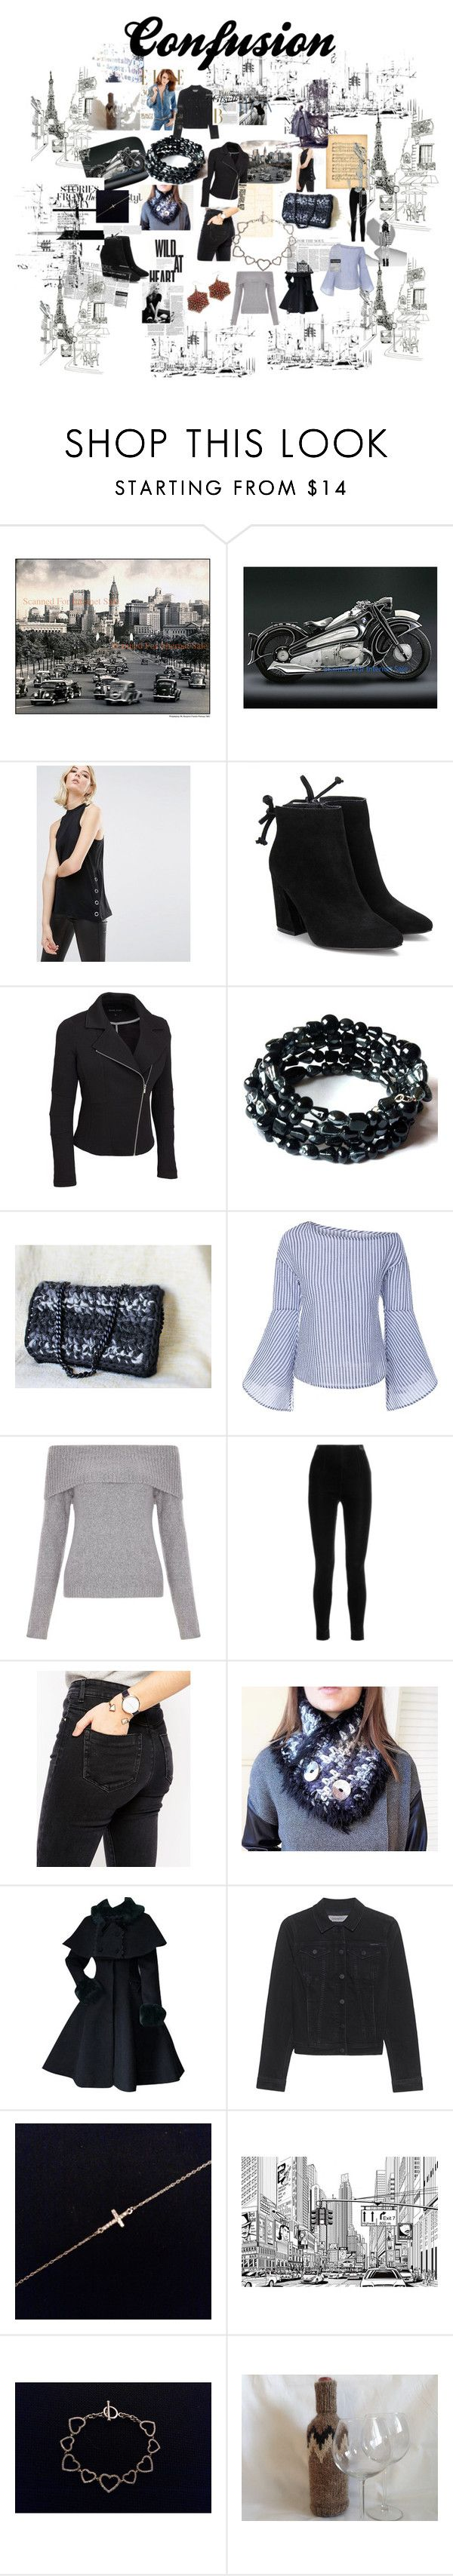 """""""Confusion"""" by mariliart on Polyvore featuring BMW, Cheap Monday, New Look, Balmain, ASOS, Calvin Klein Jeans, Marc Jacobs and plus size clothing"""